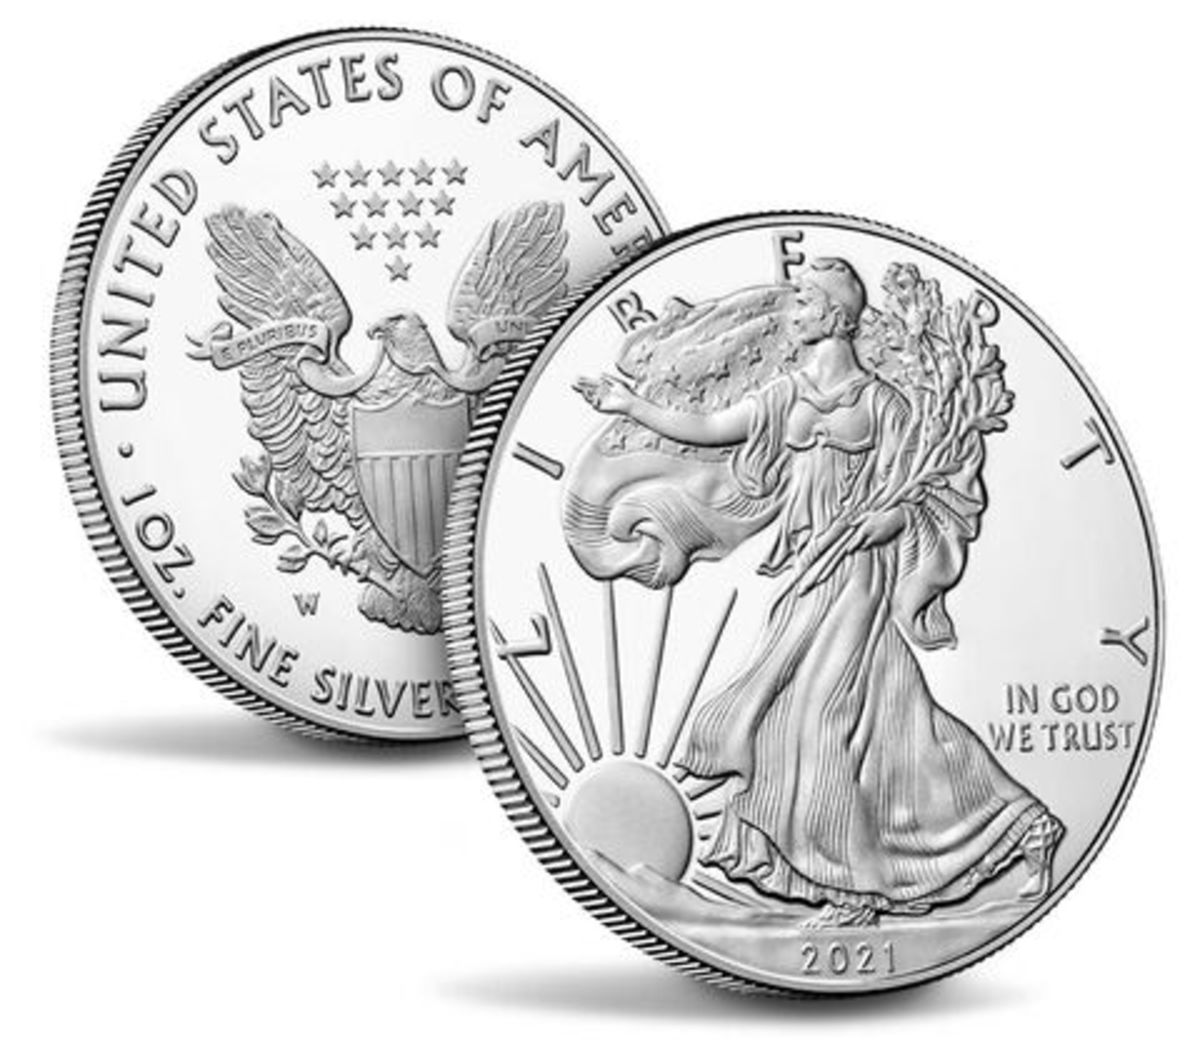 The 2021 silver proof American Eagle proof will be released Jan. 7. (Images courtesy U.S. Mint.)